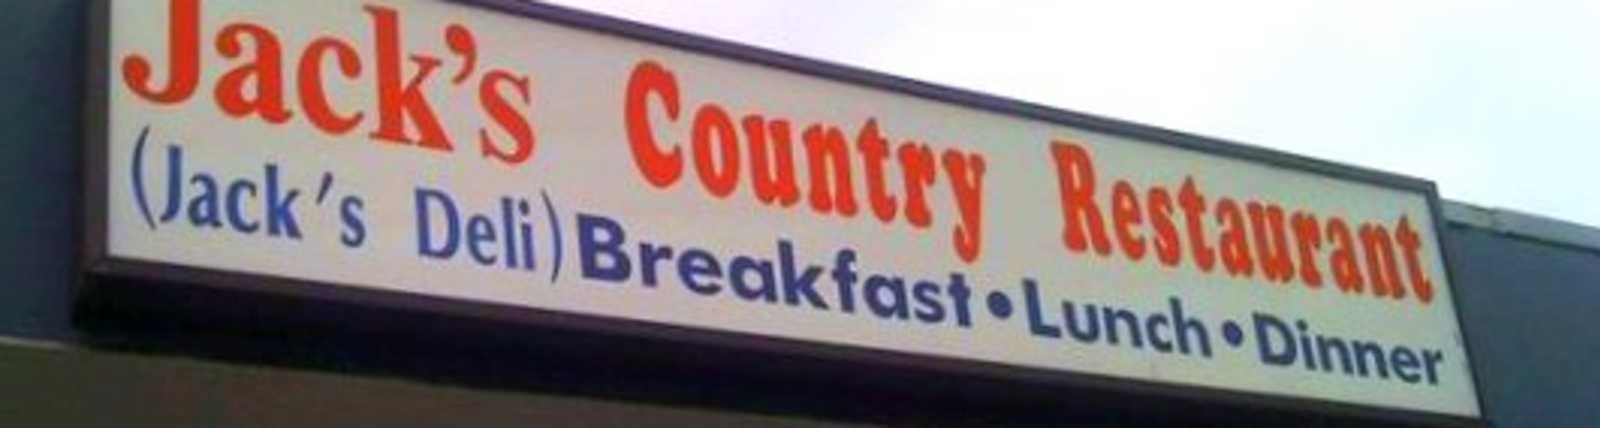 Jack's Country Resturant